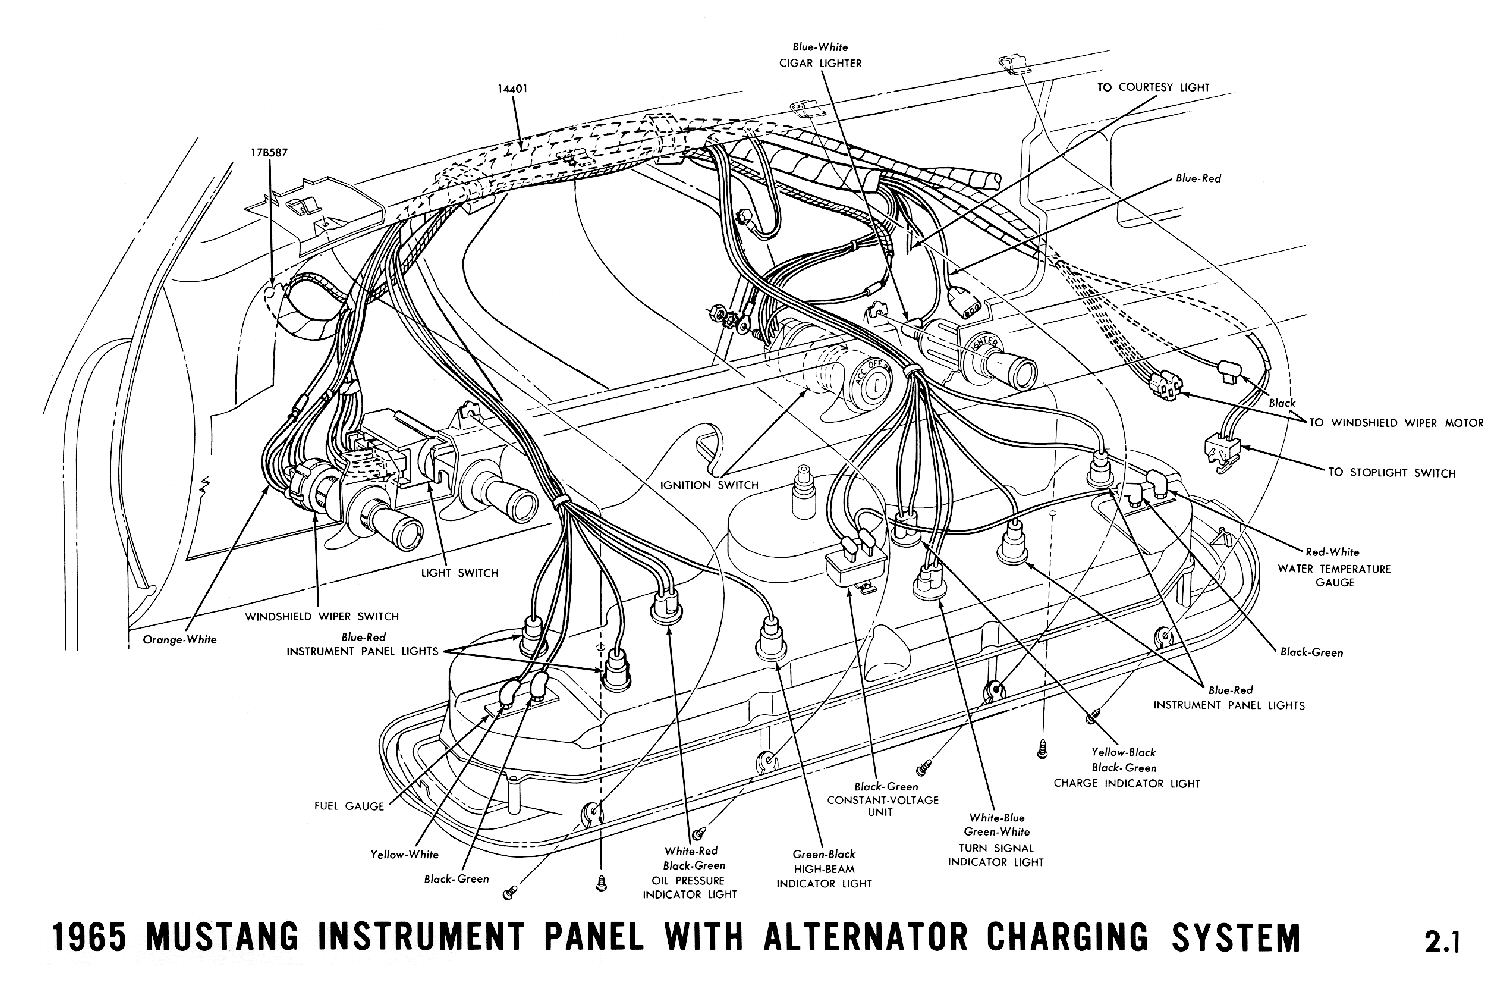 1965a 1965 mustang wiring diagrams average joe restoration 89 mustang dash wiring diagram at alyssarenee.co